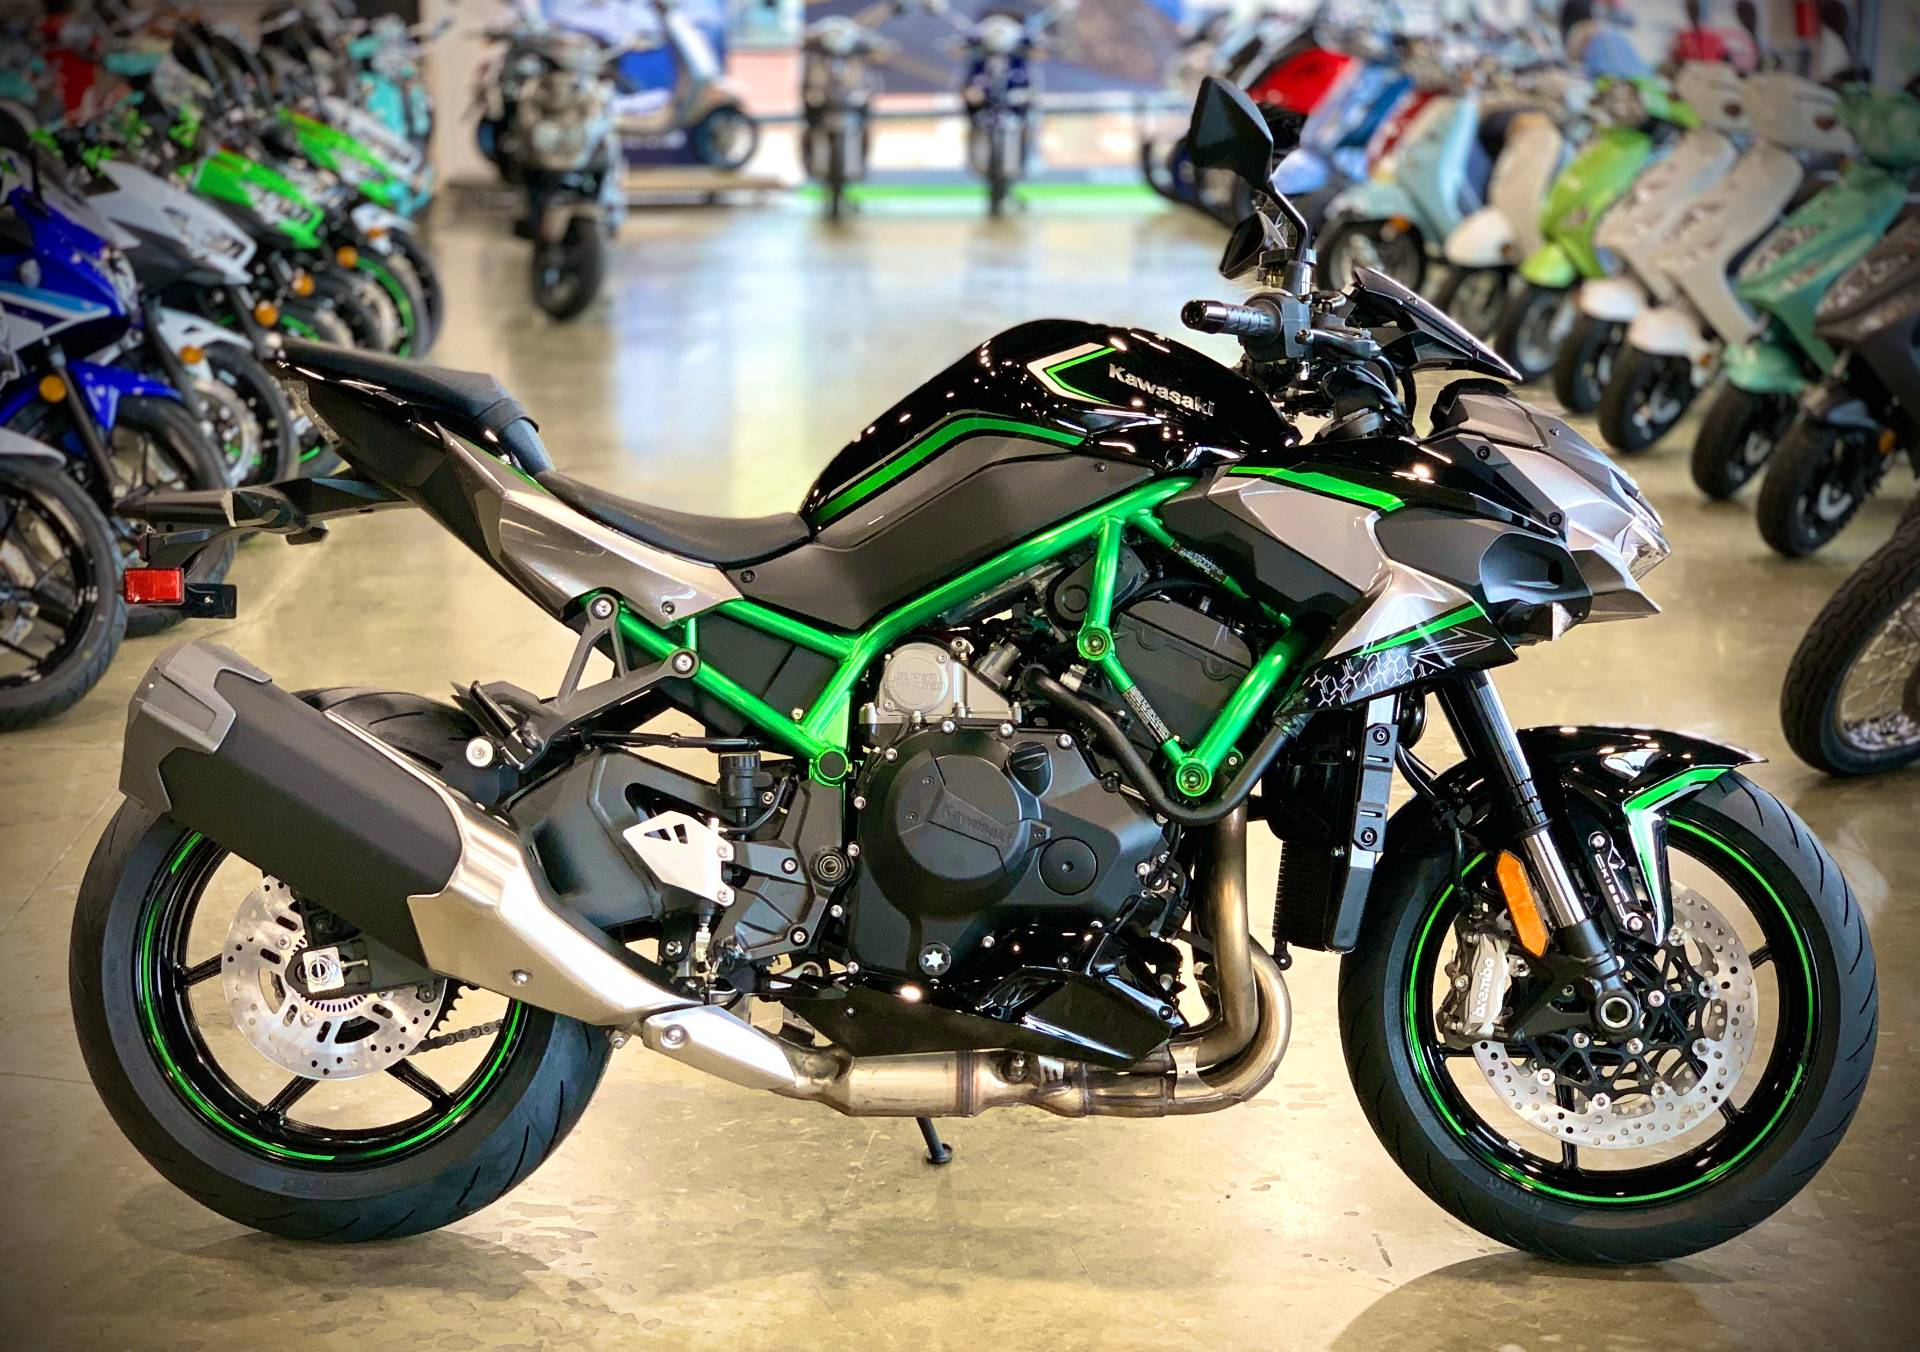 2020 Kawasaki Z H2 in Plano, Texas - Photo 1